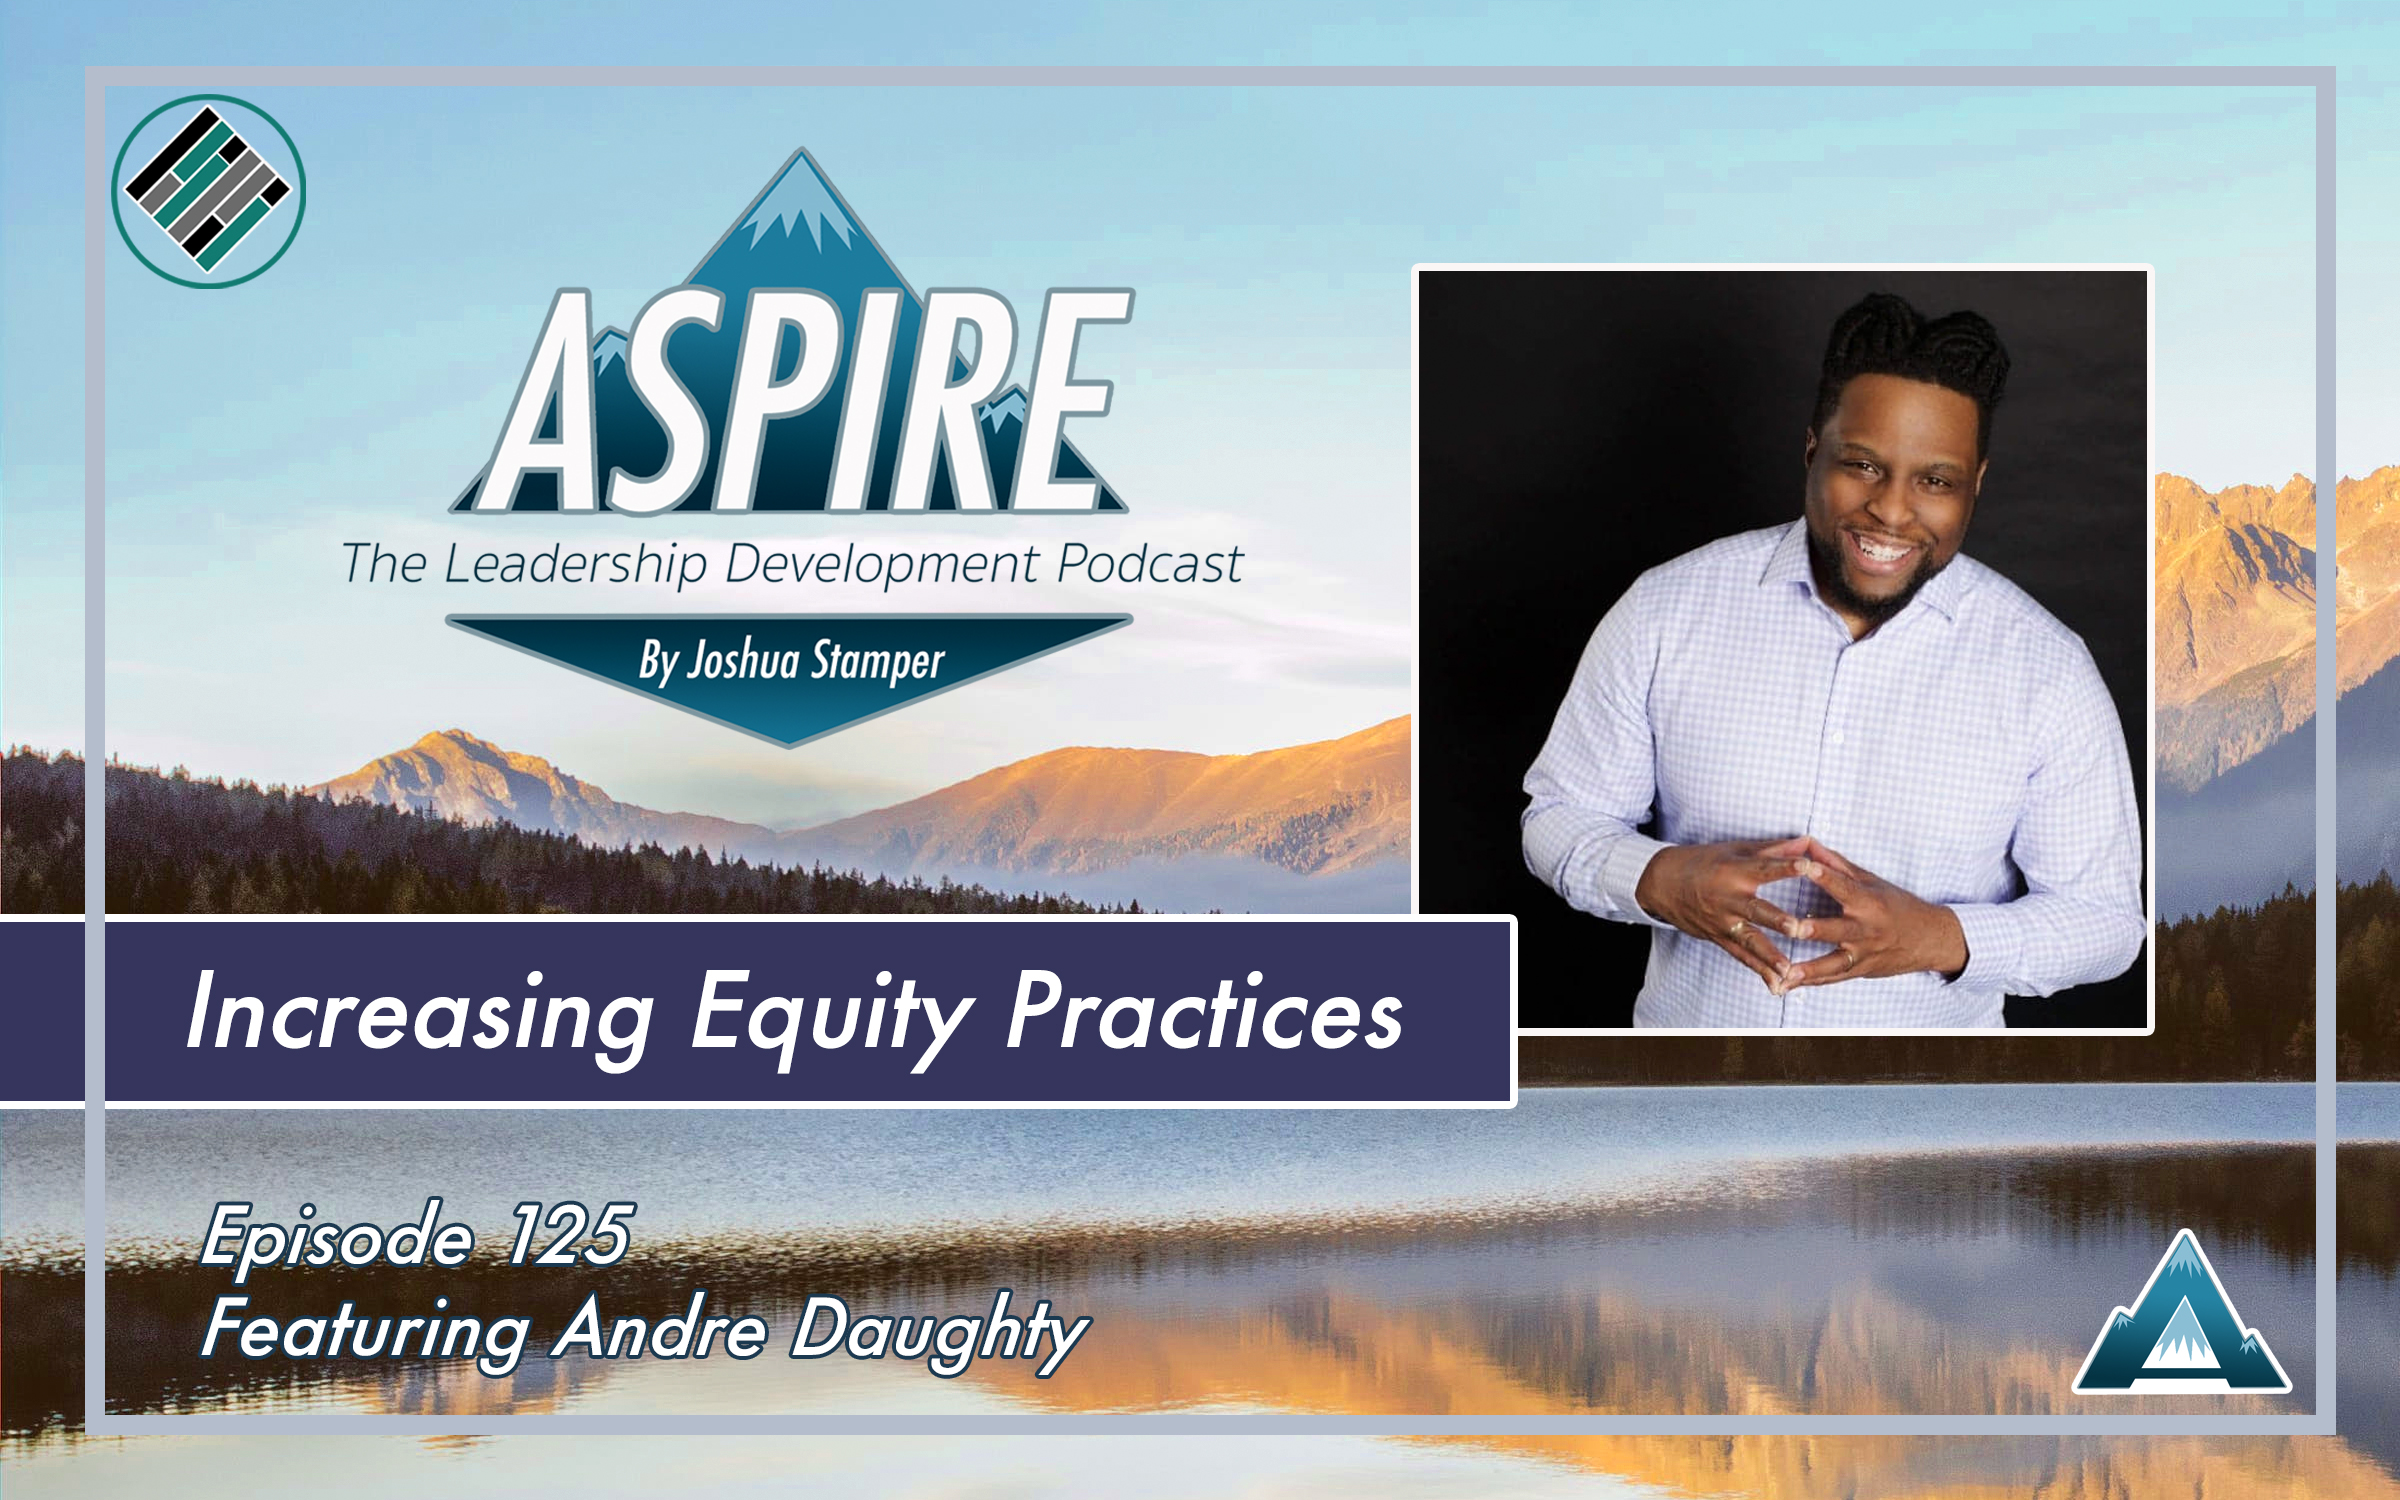 Andre Daughty, Joshua Stamper, Aspire: The leadership Development Podcast, #AspireLead